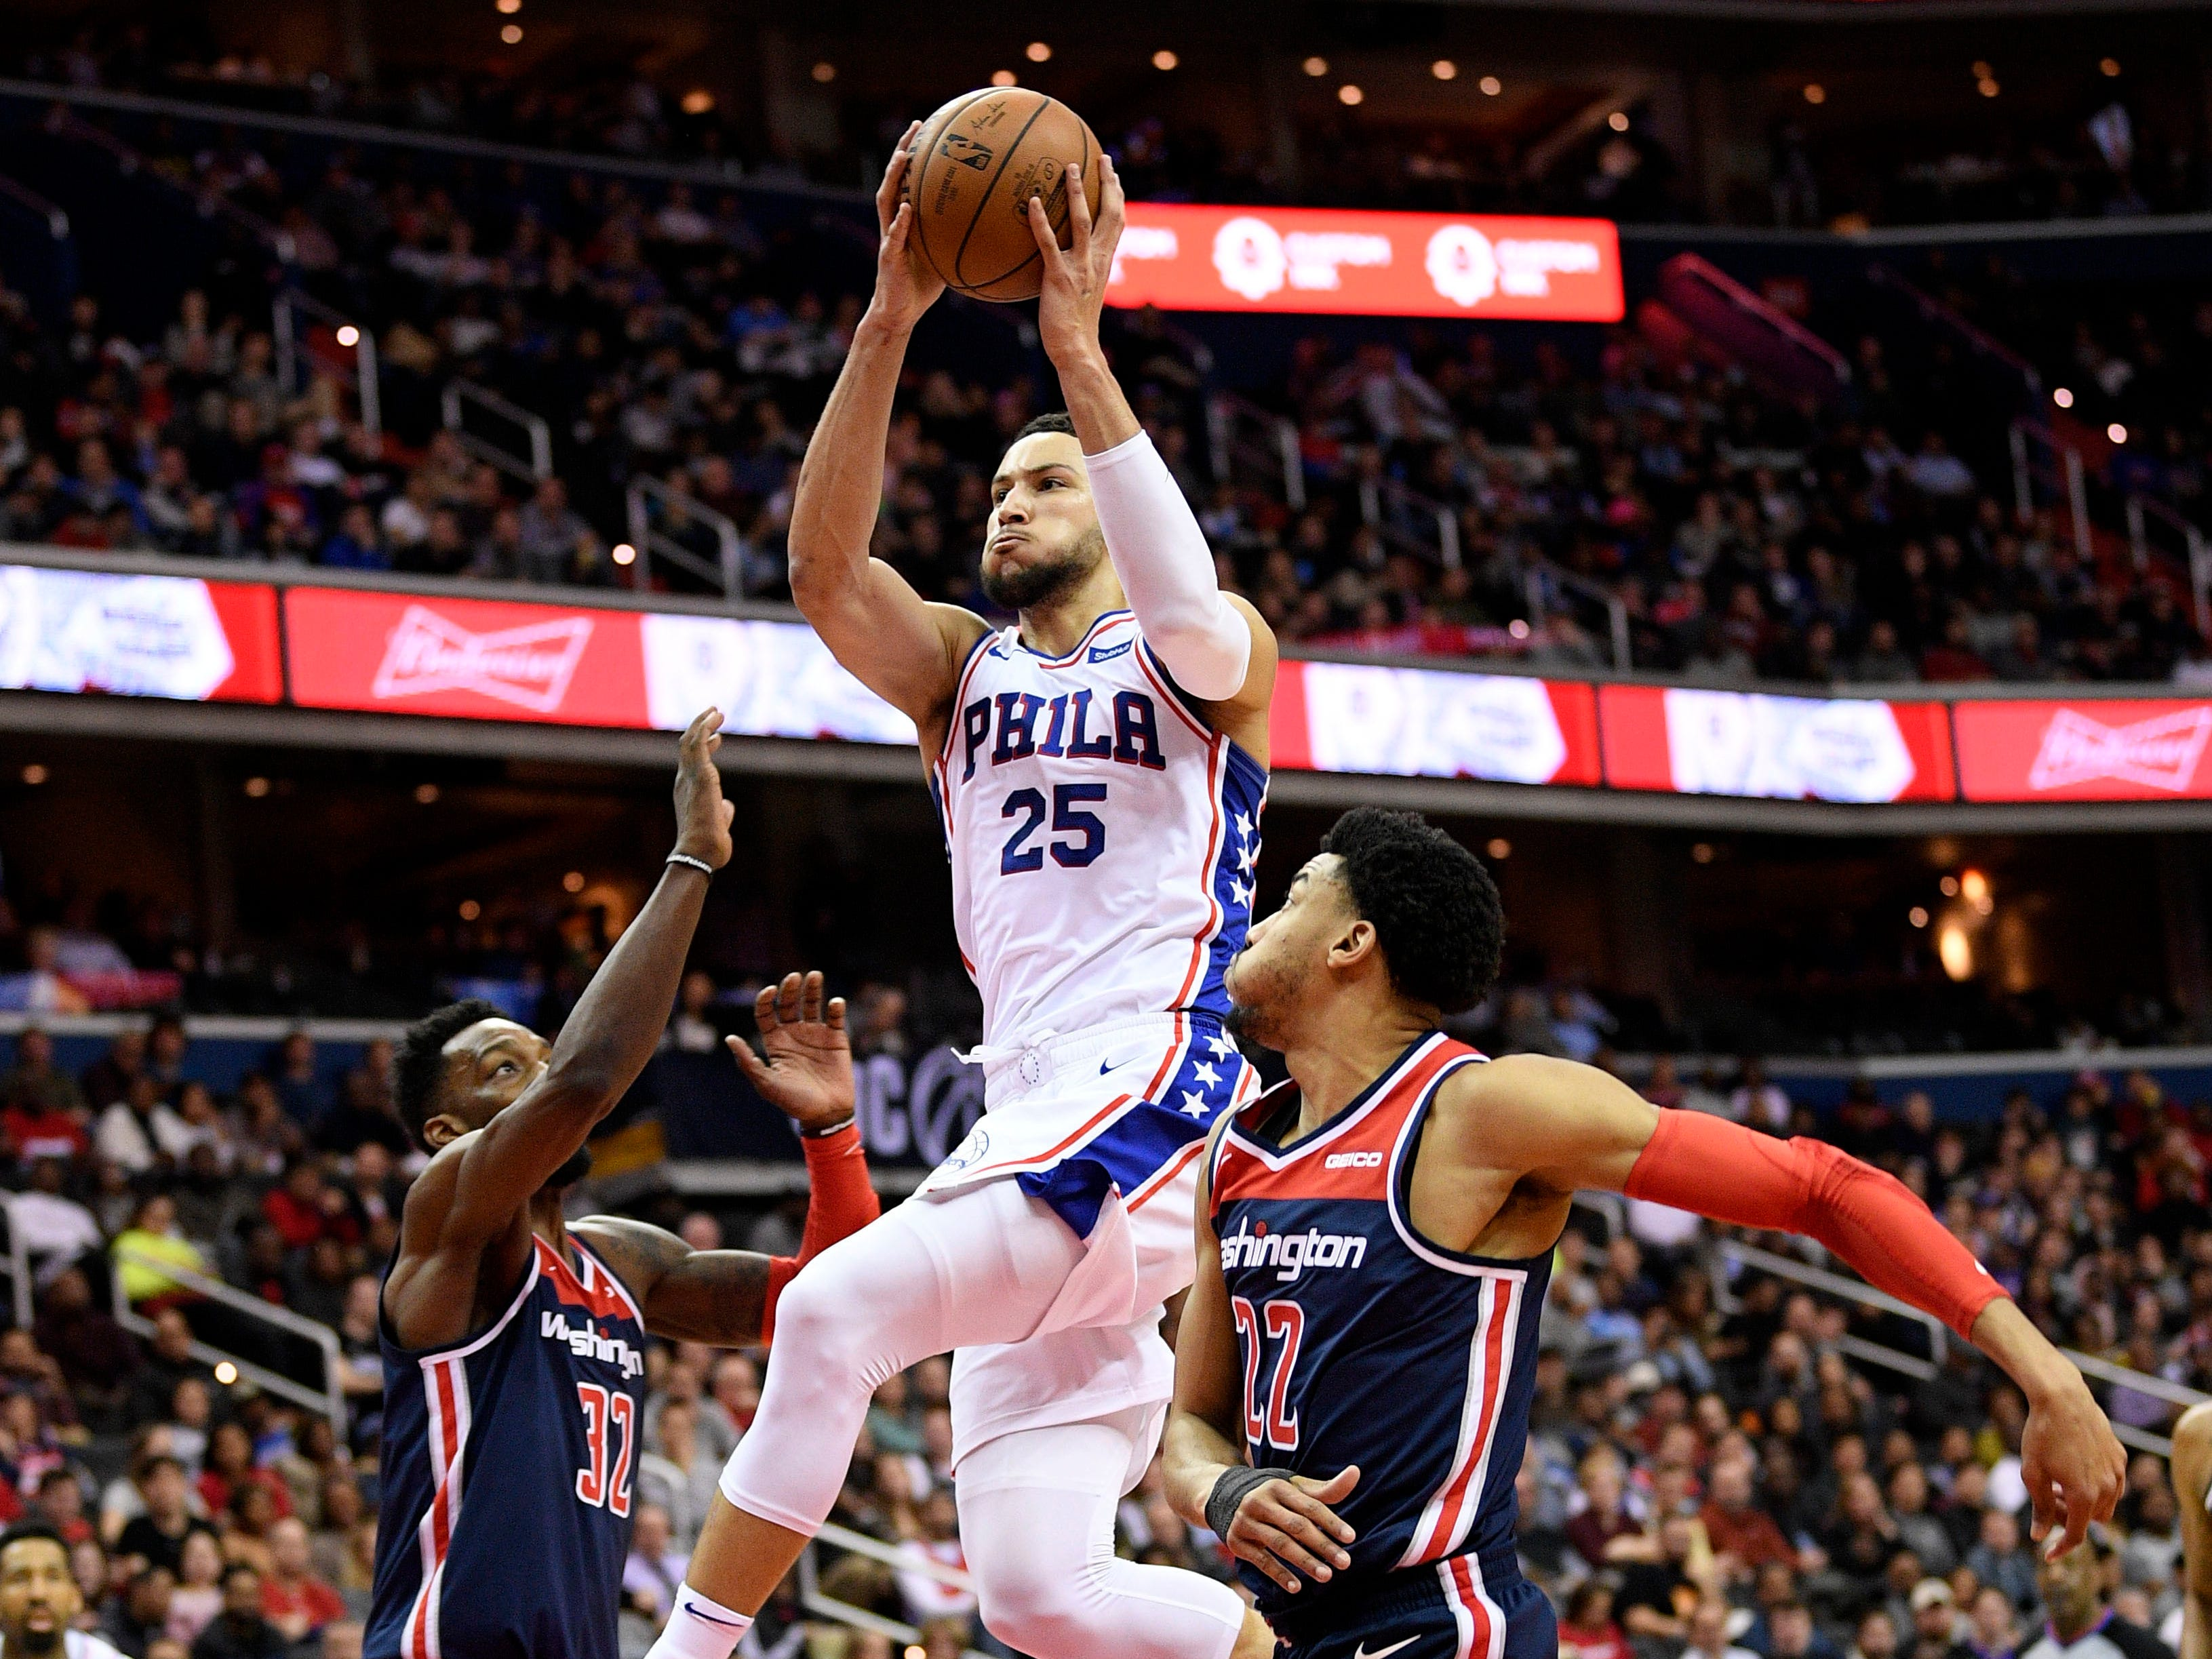 Philadelphia 76ers guard Ben Simmons (25) goes to the basket against Washington Wizards forward Otto Porter Jr. (22) and forward Jeff Green (32) during the first half of an NBA basketball game, Wednesday, Jan. 9, 2019, in Washington. (AP Photo/Nick Wass)